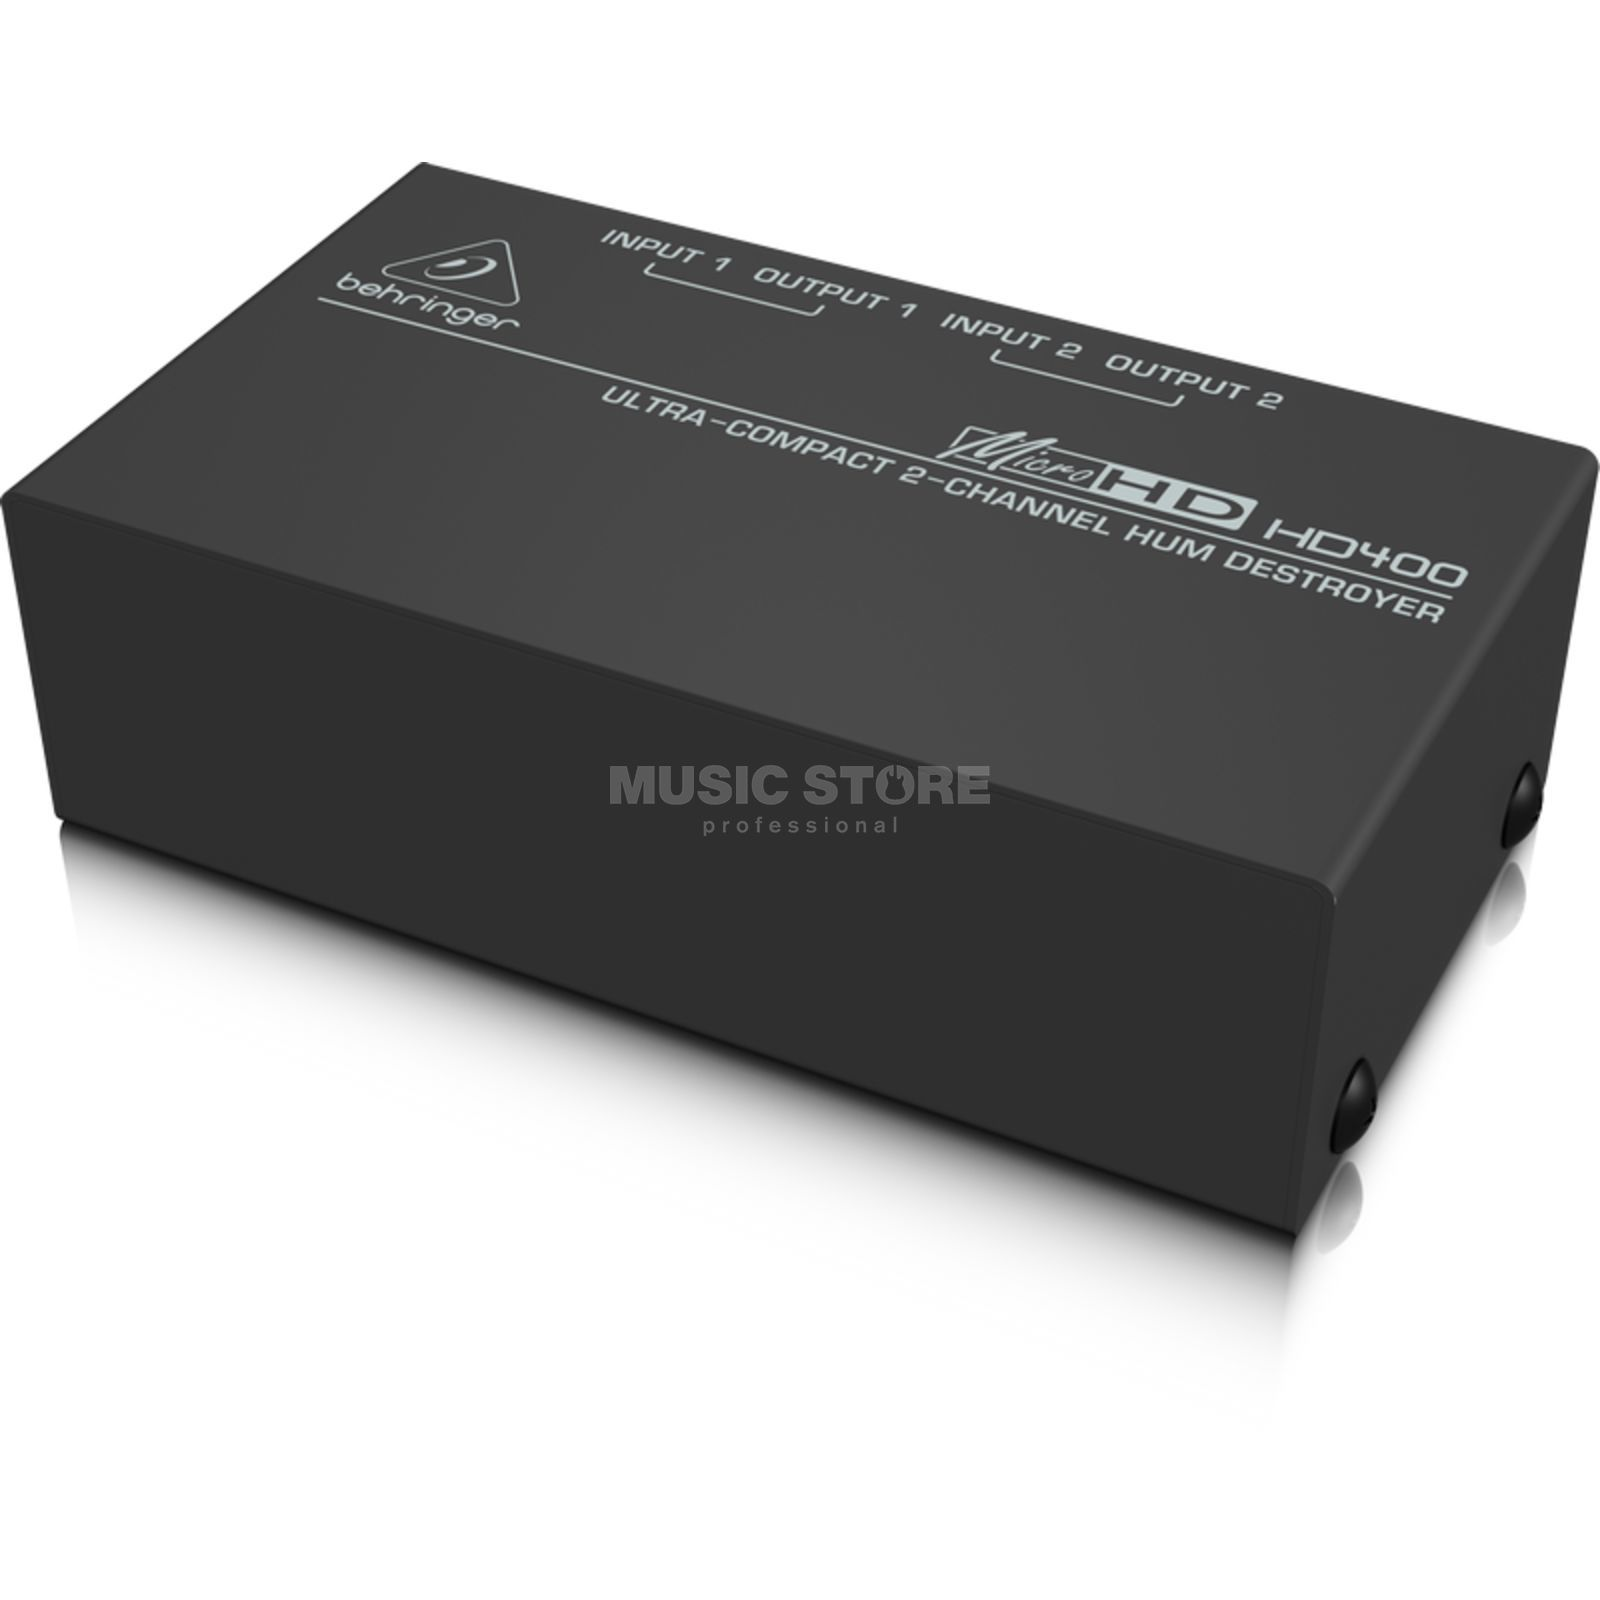 Behringer HD 400 MICROHD 2-Channel Hum Destroyer Produktbillede